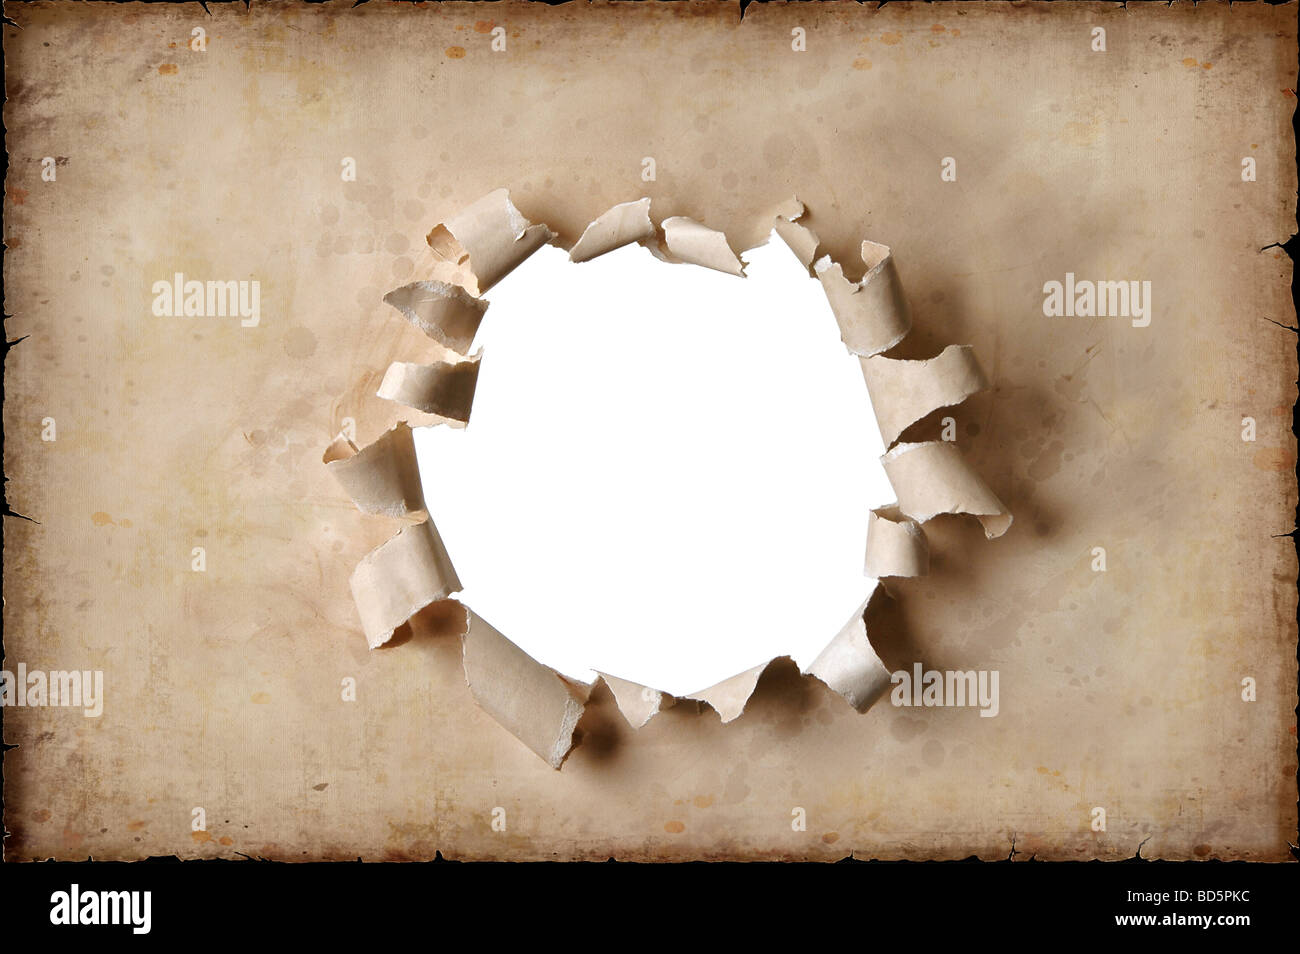 Vintage paper with a hole torn in the middle - Stock Image